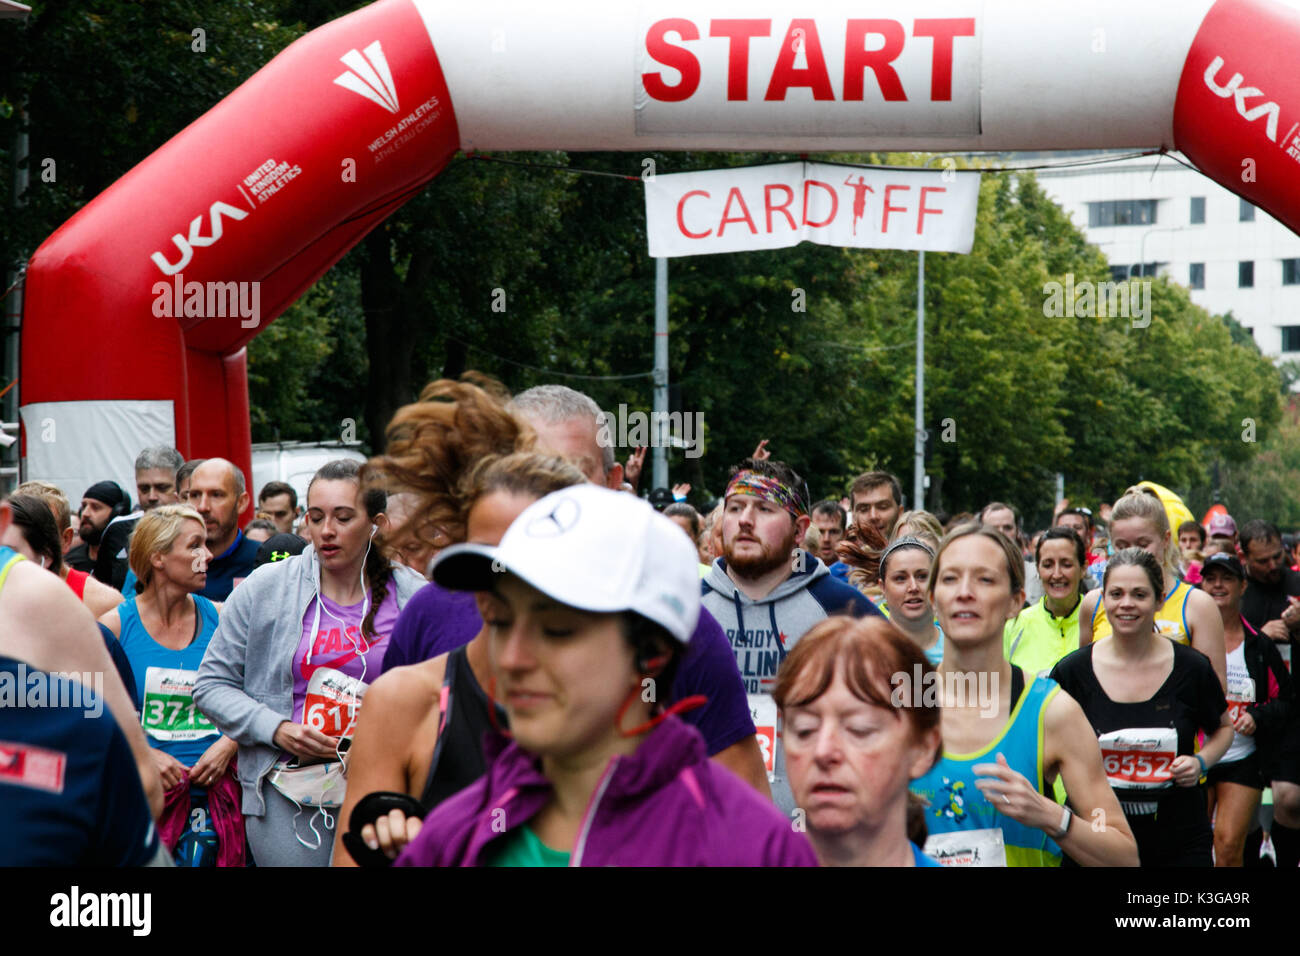 Cardiff 10K, South Wales, UK.  3 September 2017.  UK Weather: 2500 runners brave the rain to take part in the Cardiff 10K run this morning at 10am.  Runners are raising money for Kidney Wales. Credit: Andrew Bartlett/Alamy Live News. - Stock Image